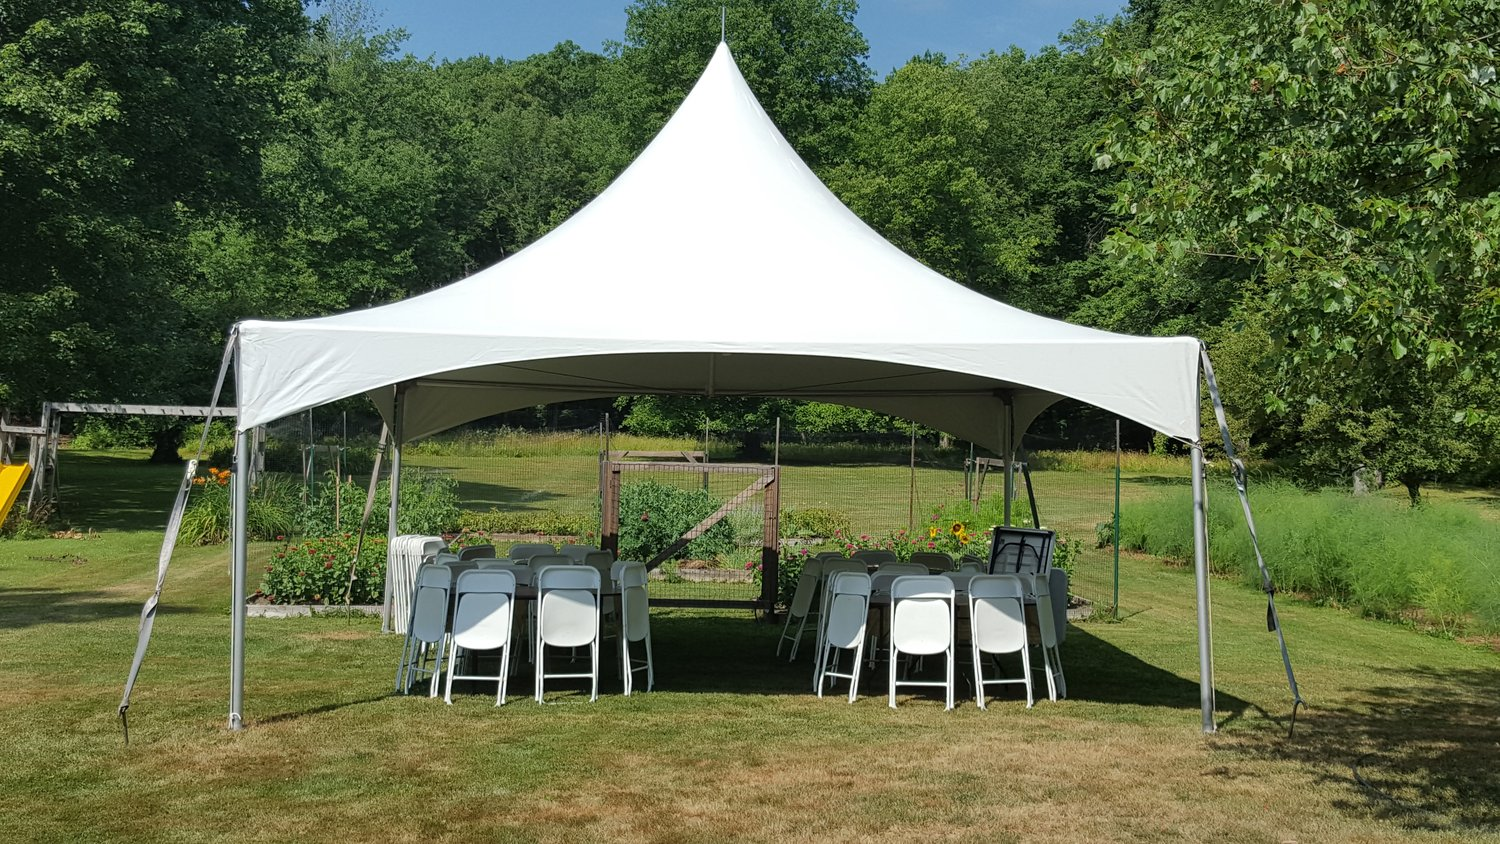 Windswept – The Company stocks an impressive inventory of tents for different types of events such as weddings, galas, private parties, corporate events, etc.